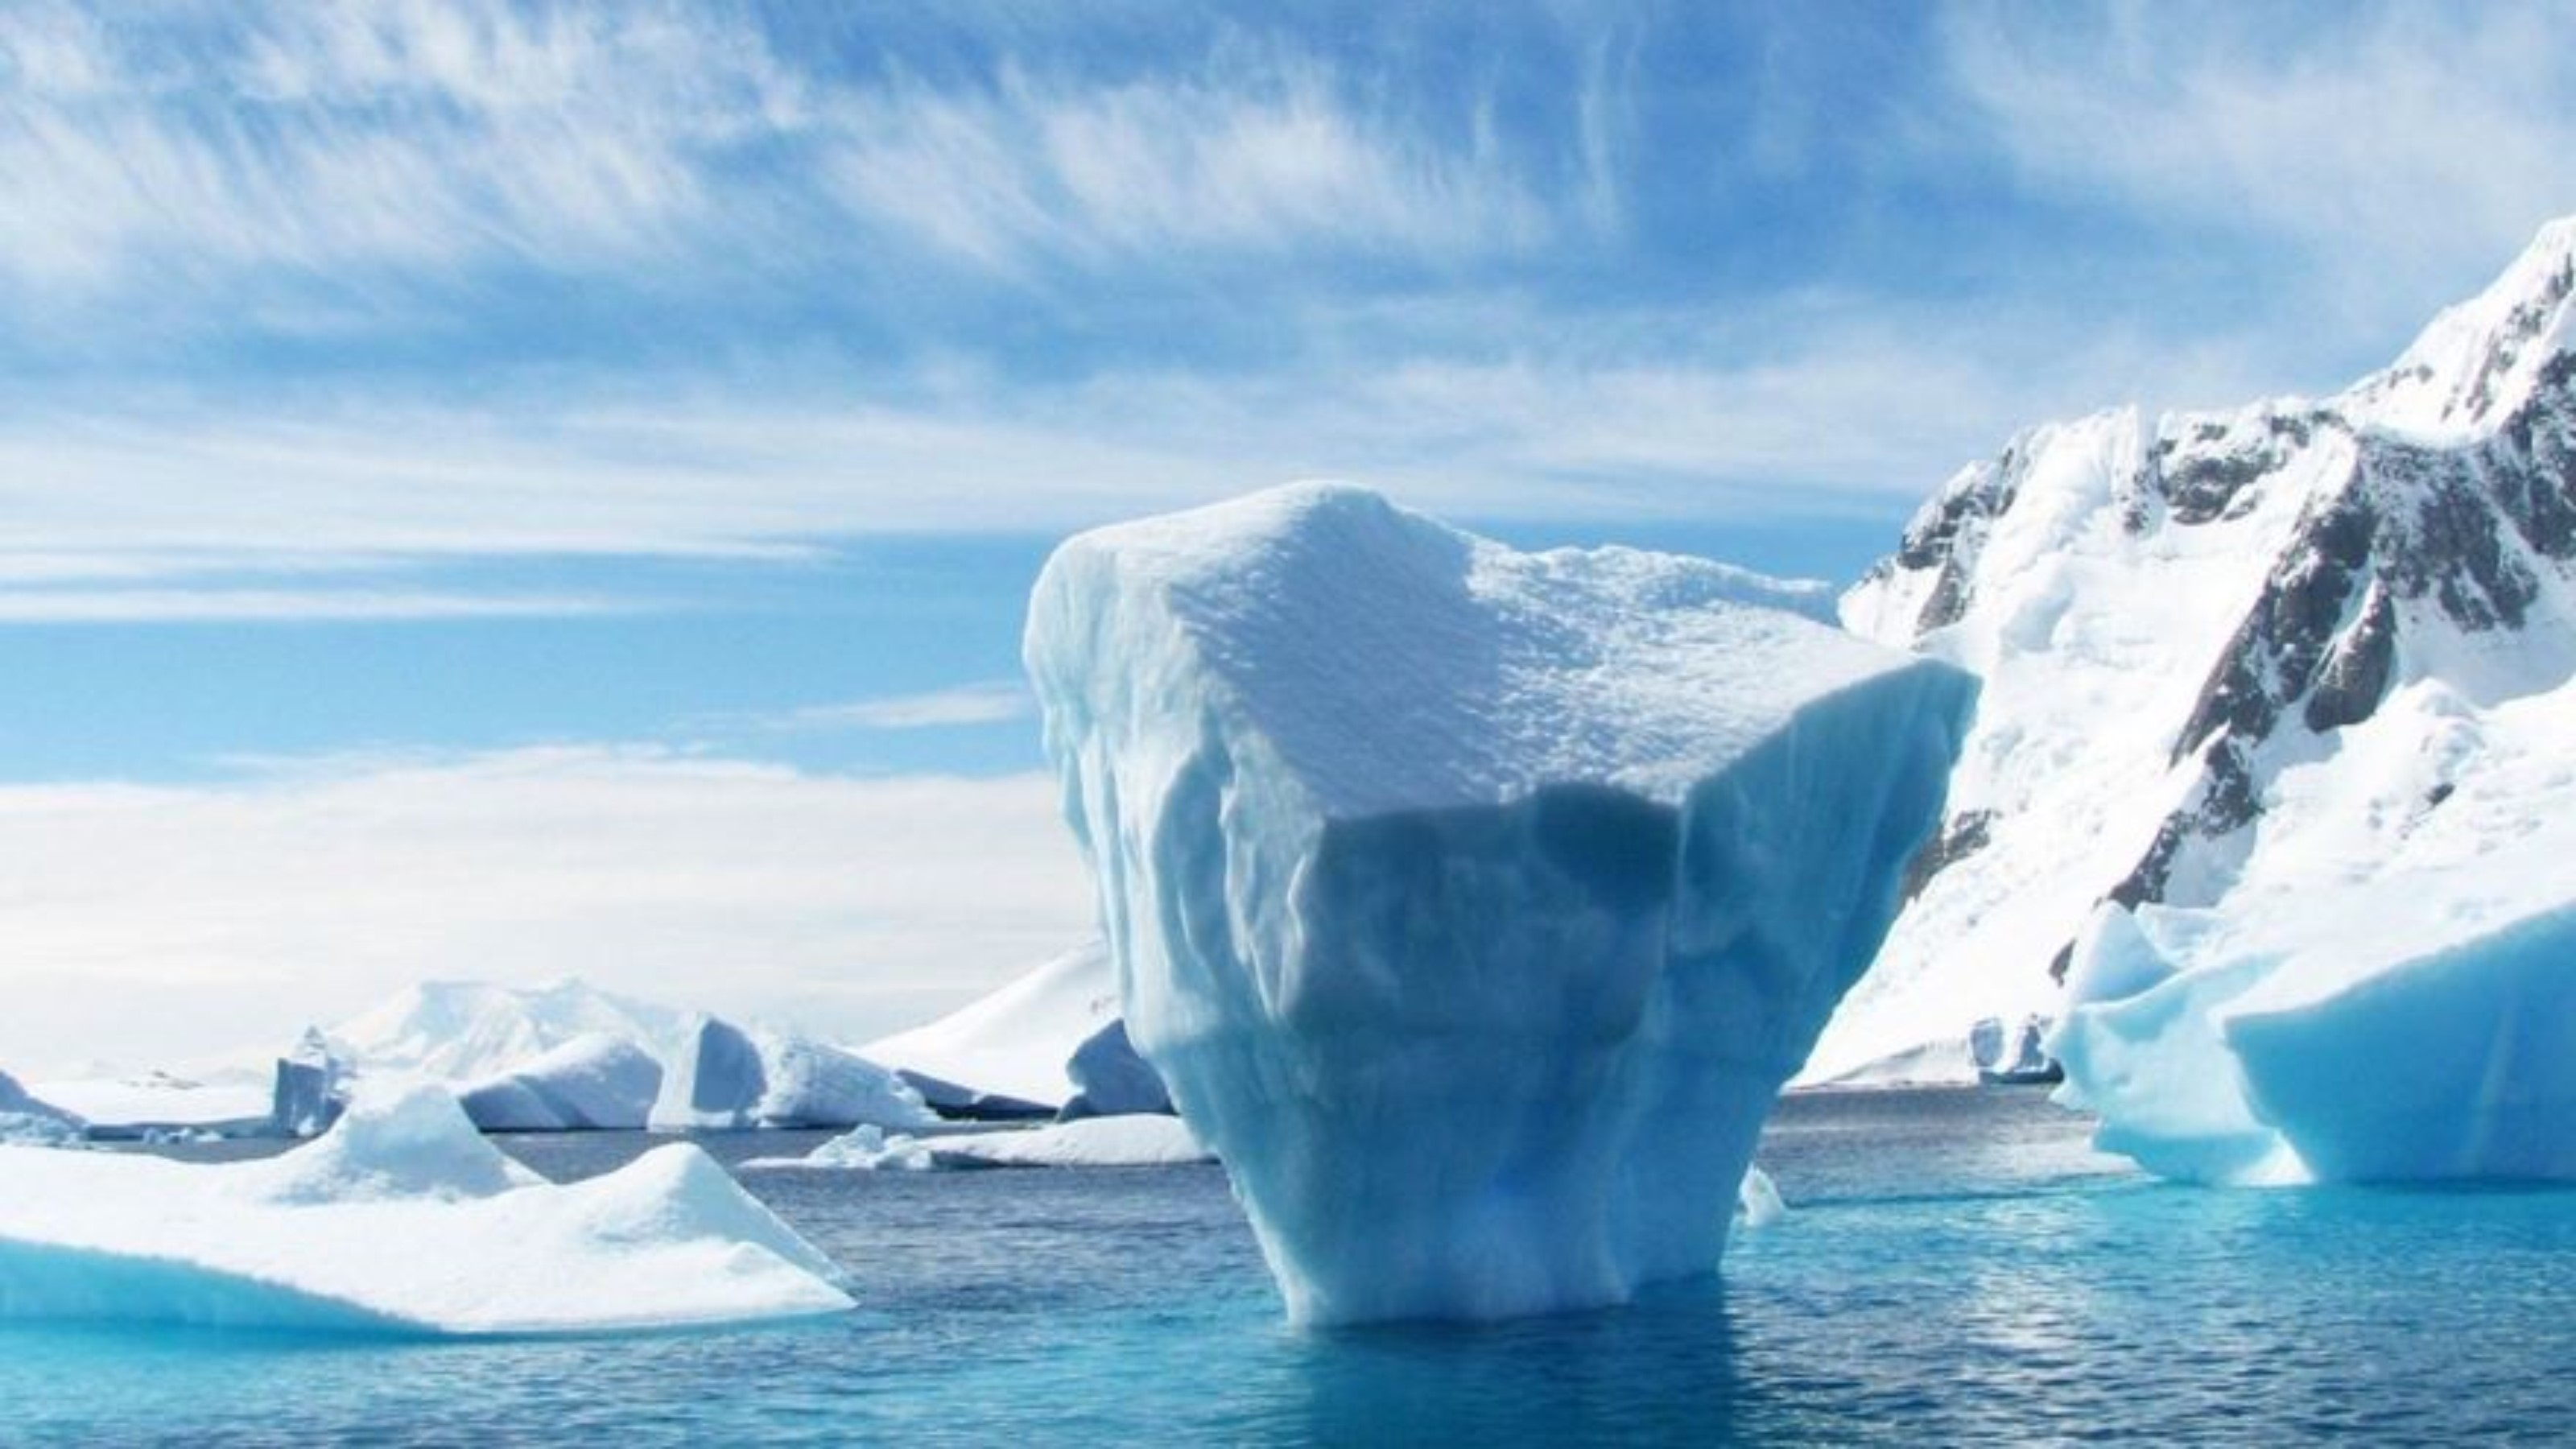 An iceberg in water.